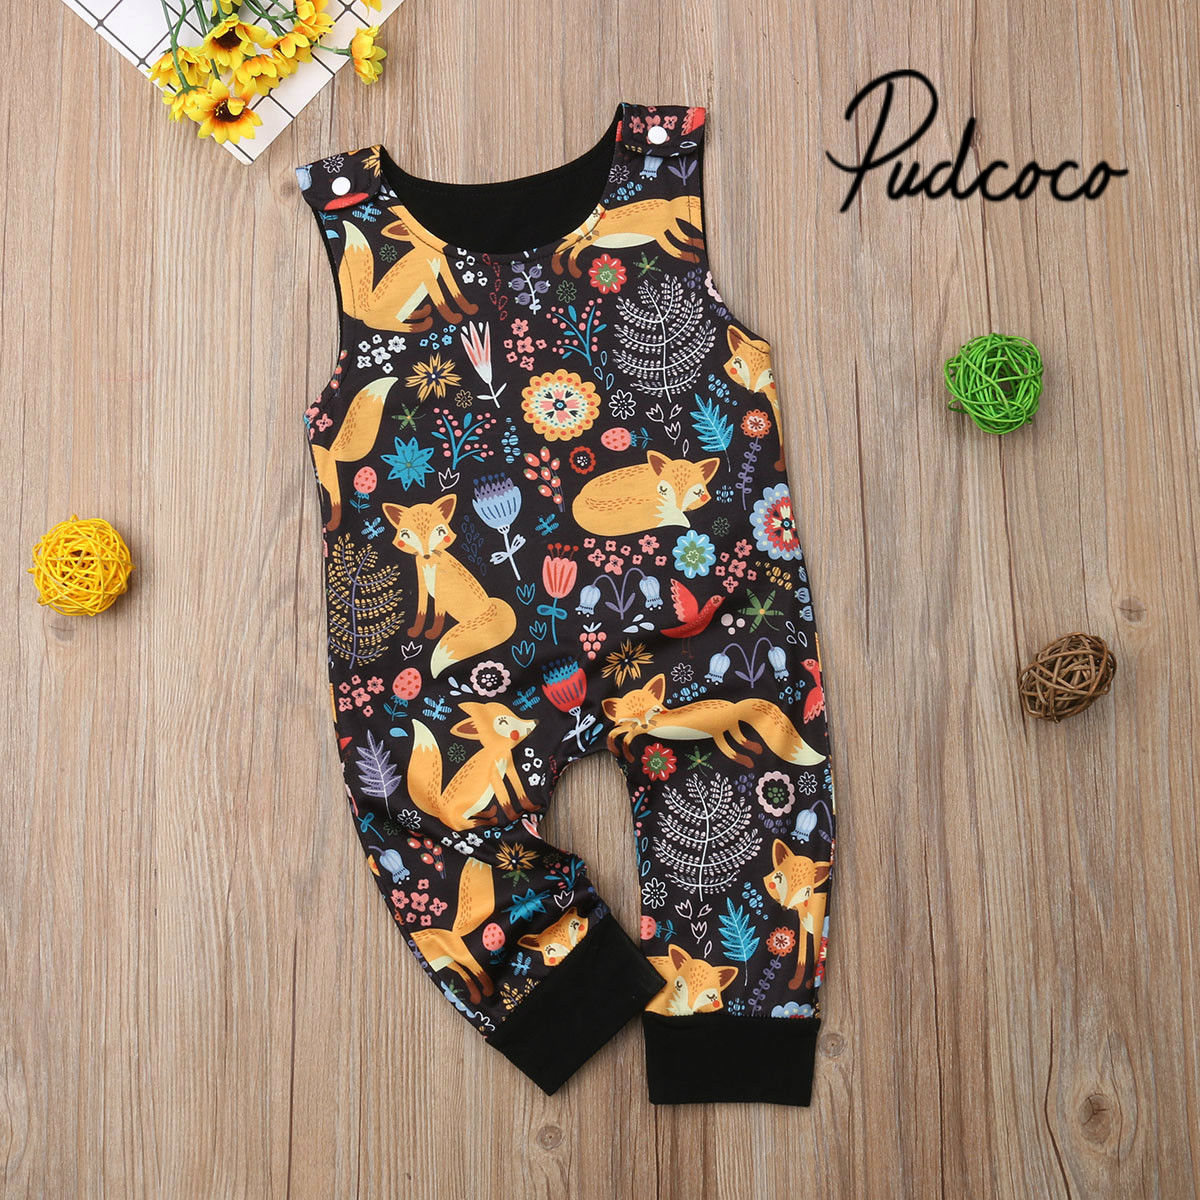 ed27b62d95e9 Fox Baby Girl Rompers Fashion Spring Newborn Baby Clothes For Boys  Sleeveless 0-18M Kids